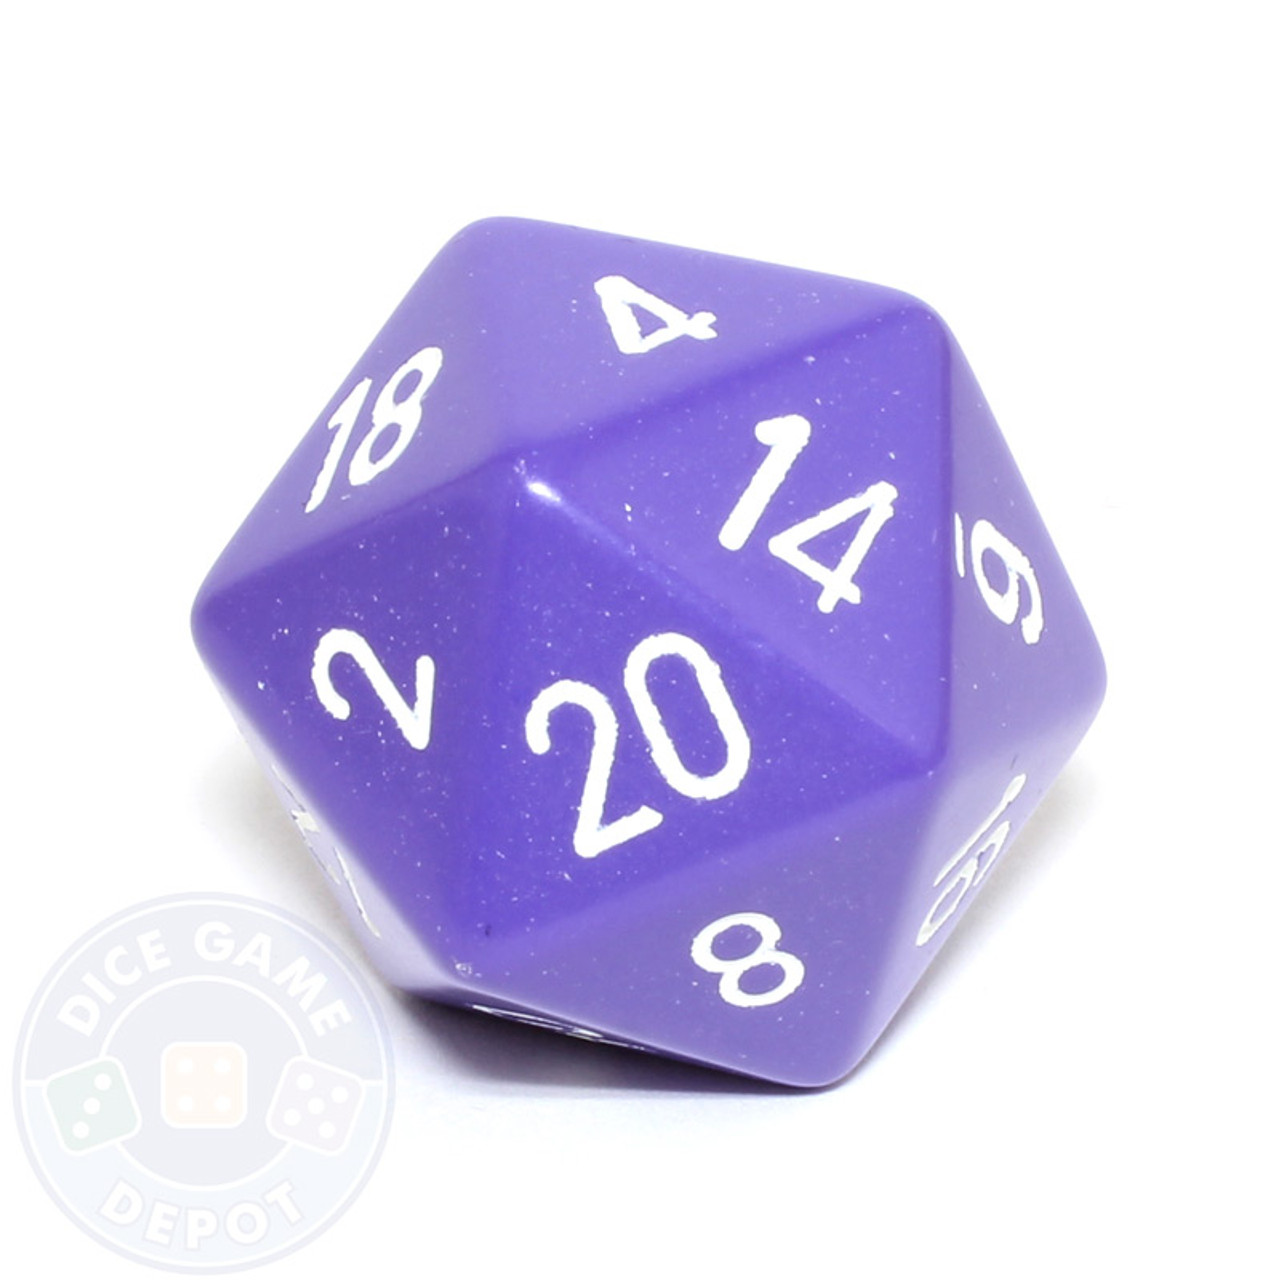 8mm Packets of 120 Opaque dice